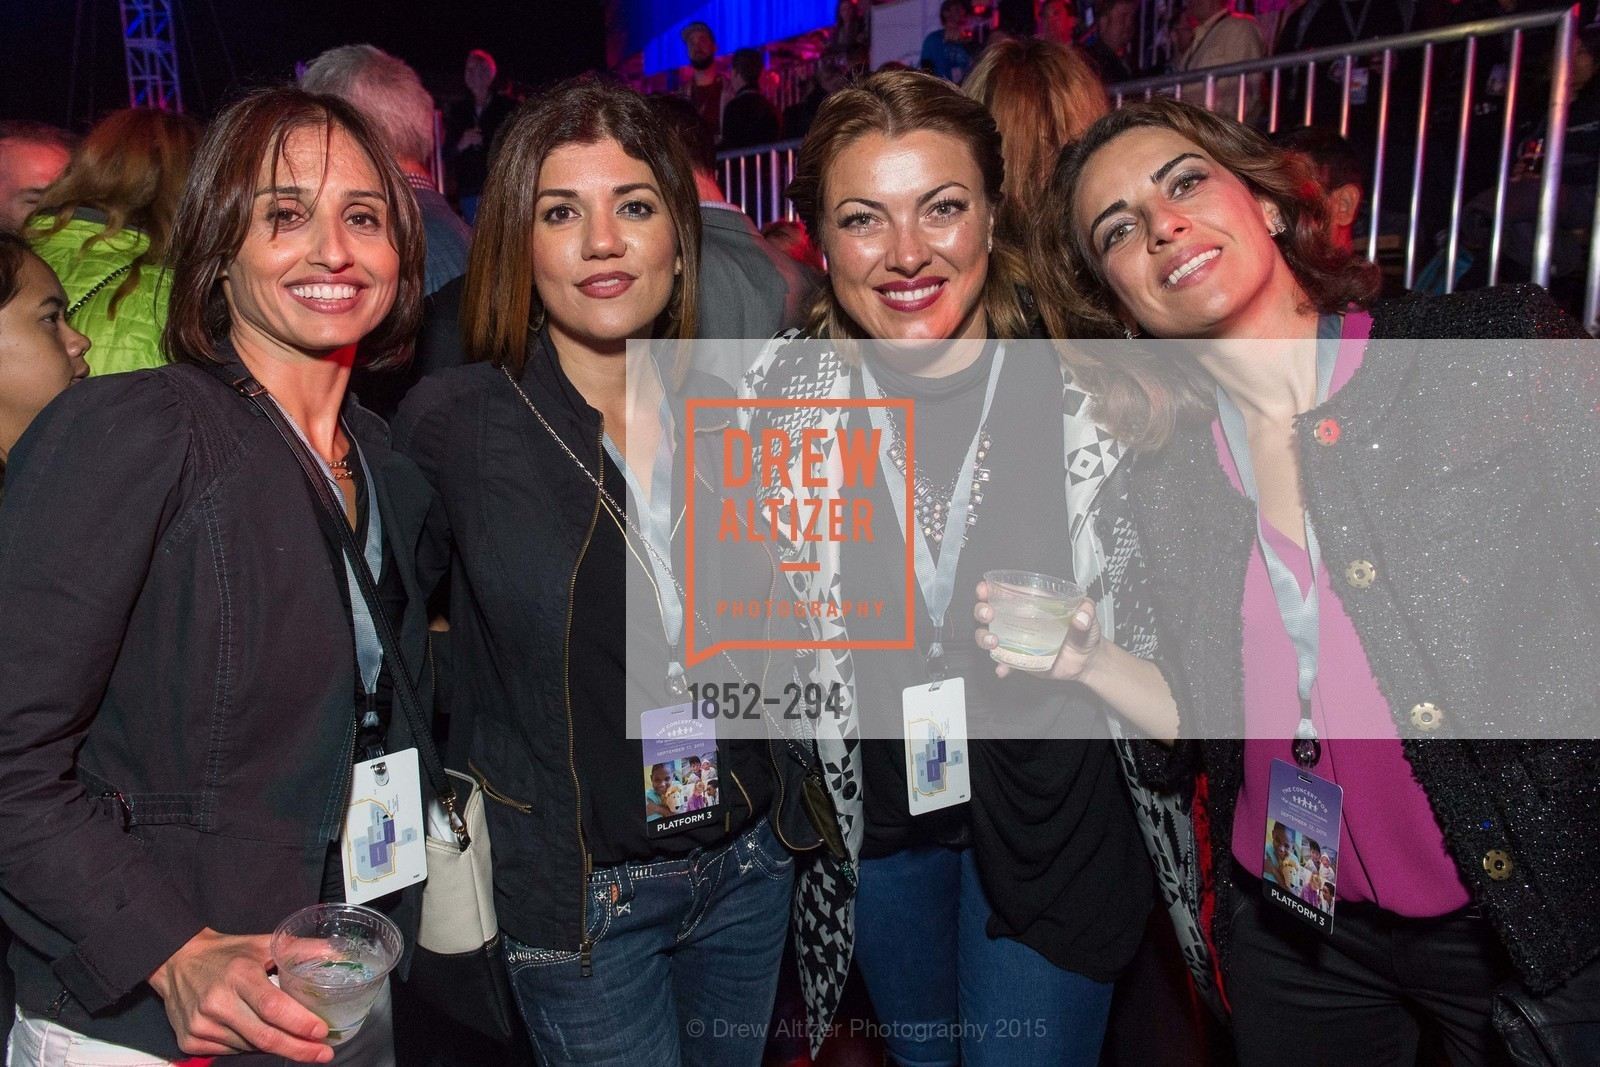 Myra Arghandiwal, Shab Farzaneh, Claudia Karkia, Leila Azad, The Concert For UCSF Benioff Children's Hospital, Pier 70, September 17th, 2015,Drew Altizer, Drew Altizer Photography, full-service agency, private events, San Francisco photographer, photographer california